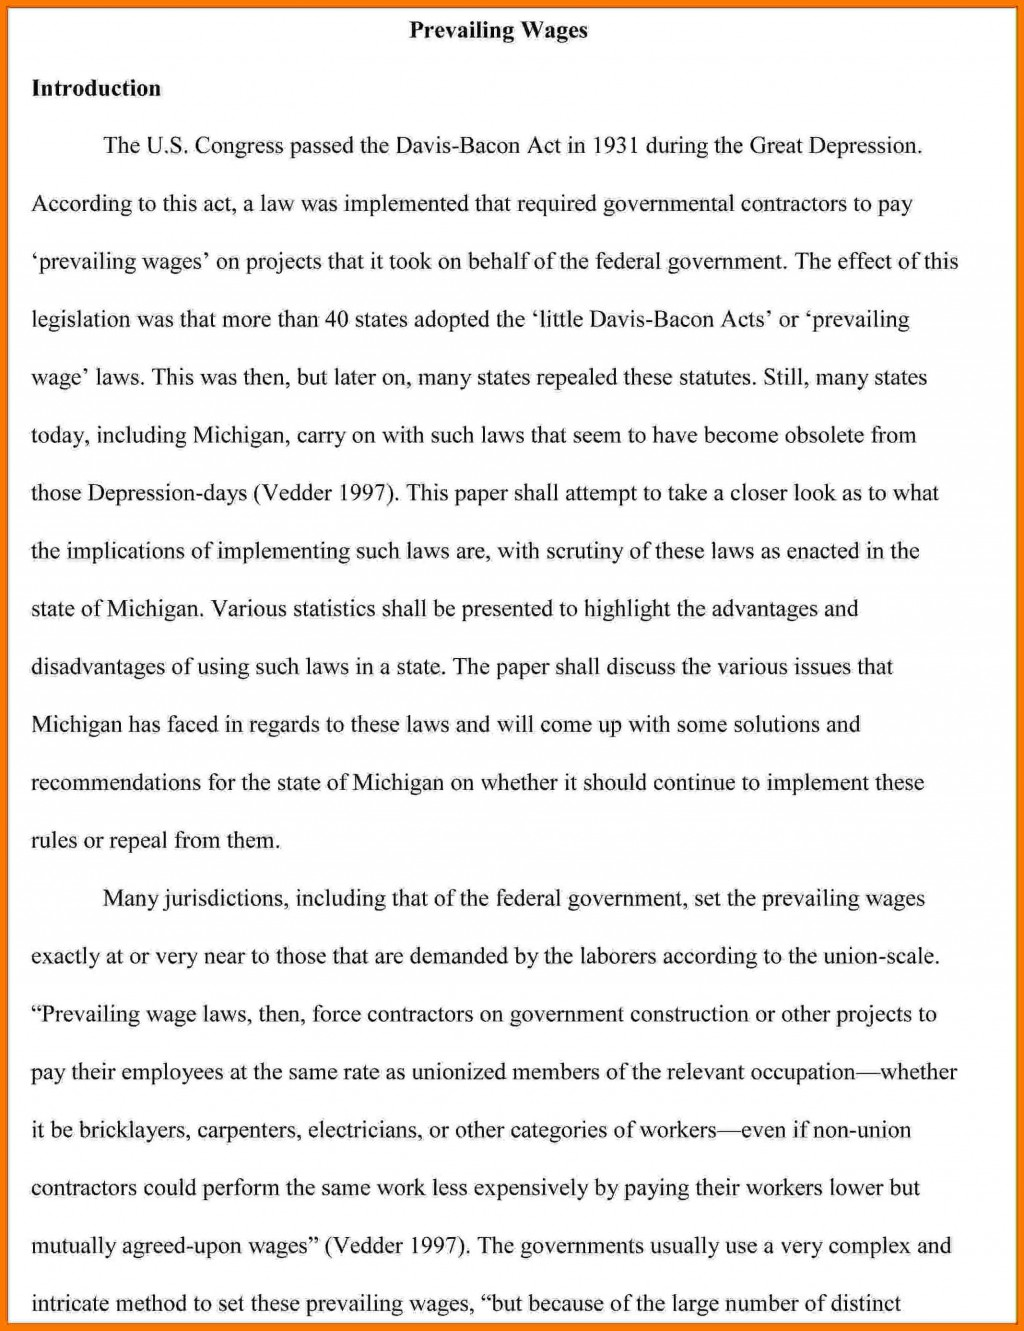 003 Collection Of Solutions Introduction Apa Paper Great Research To Frightening Example A Pdf Large